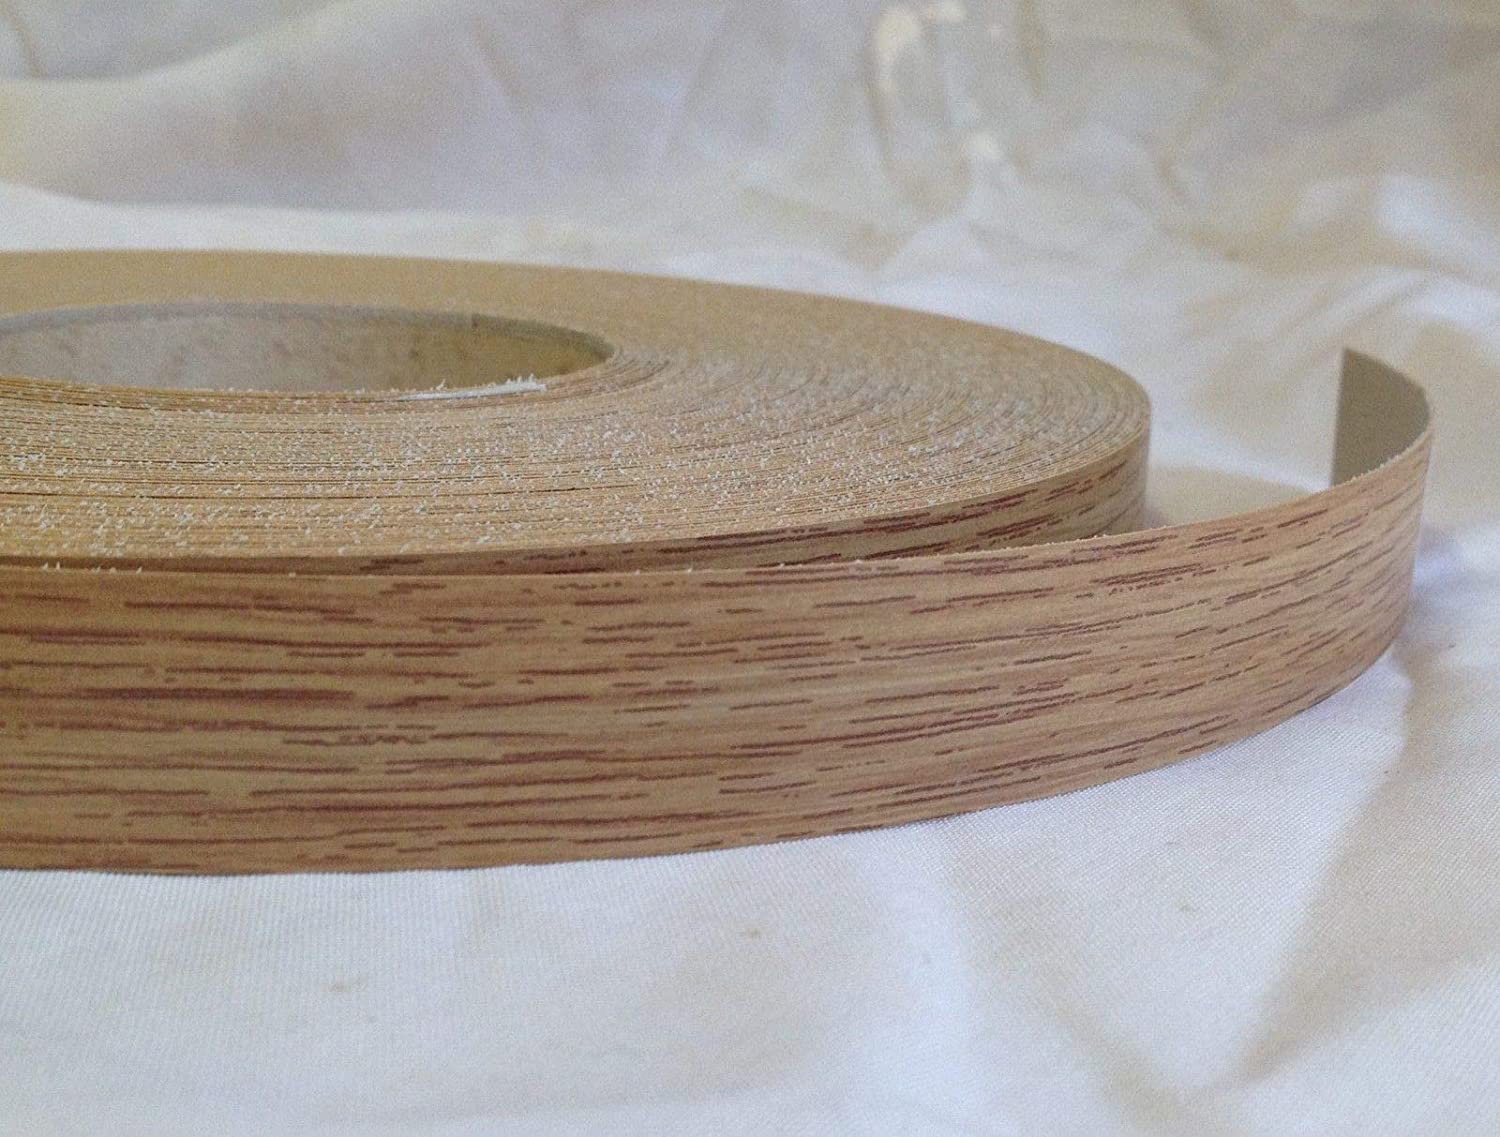 Pre Glued Iron on Melamine Natural Oak Edging Tape 22mm wide Various Lengths .Free Postage (10 metres)